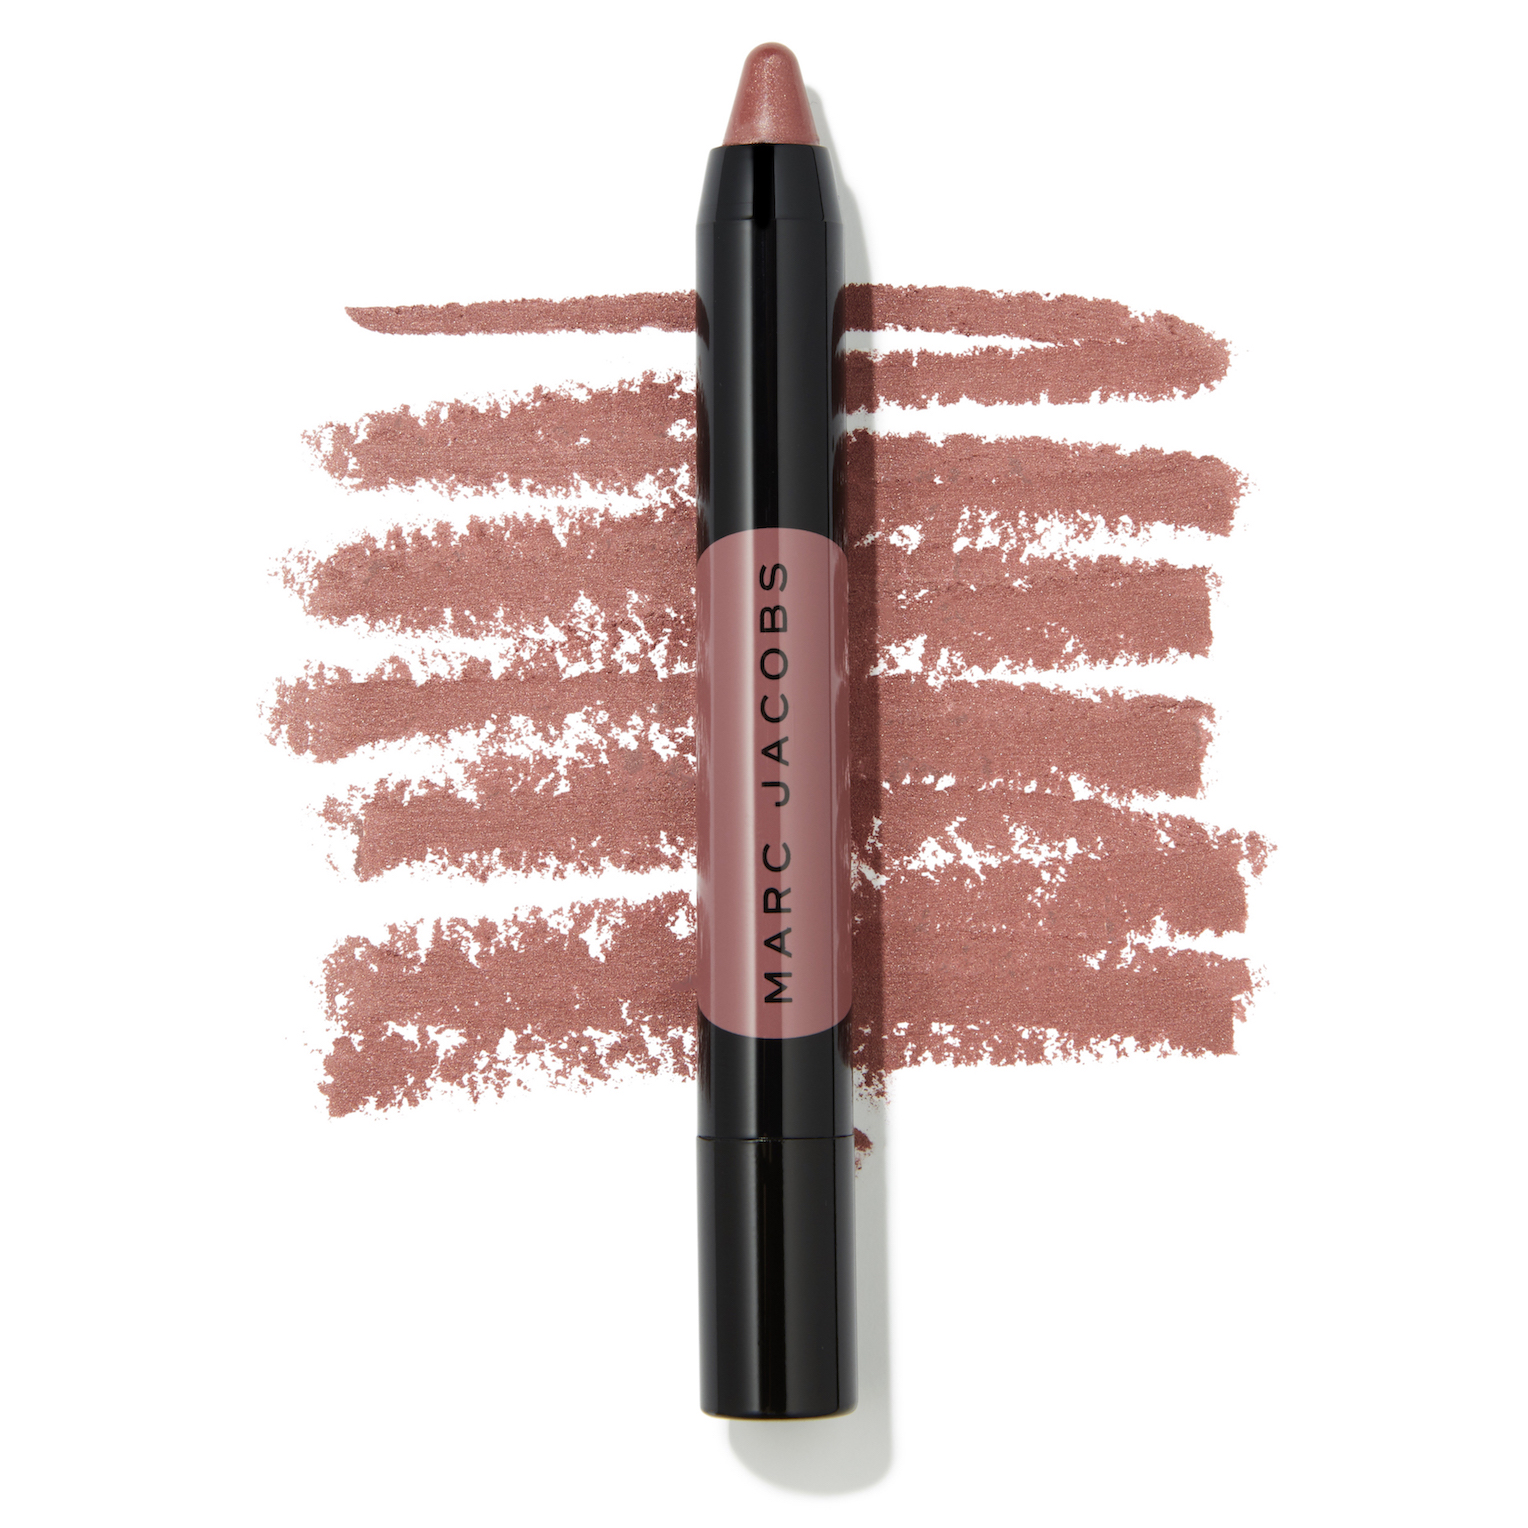 Marc Jacobs Beauty Le Marc Liquid Lip Crayon - Send Nudes Swatch - AED 125